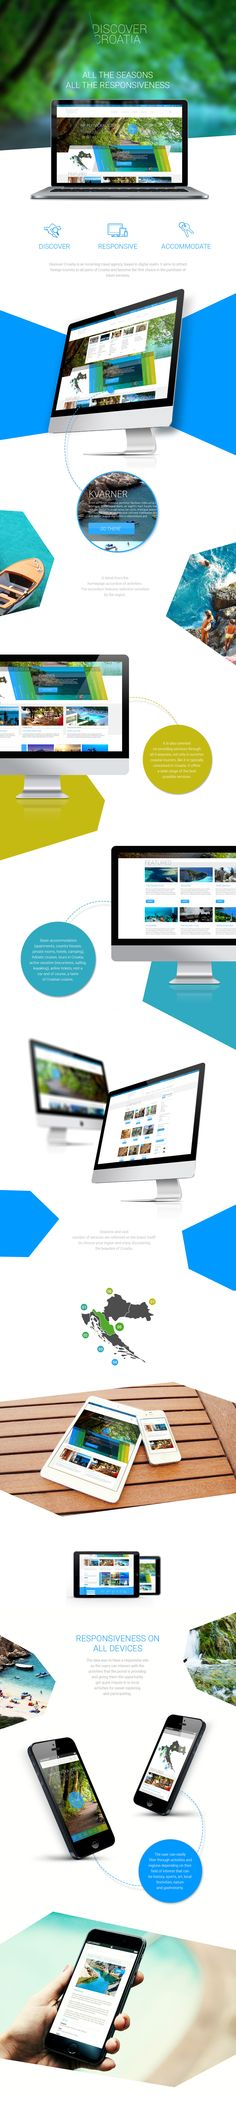 Neuralab, portfolio design, visual identity, art, desig, travel, sumer, agency, web, mockup, screen, imac